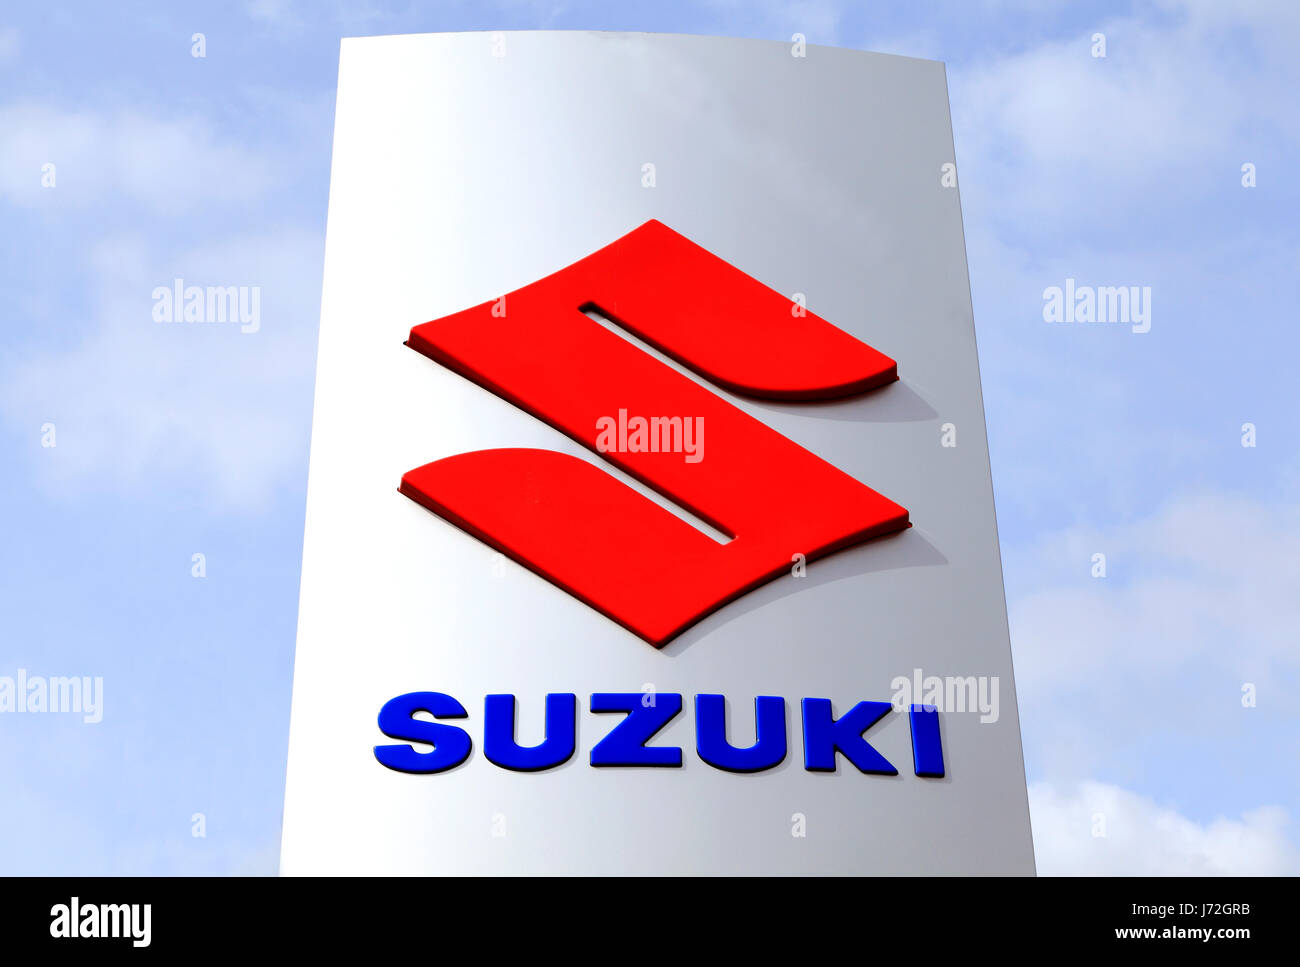 Indianapolis Suzuki Car Dealer